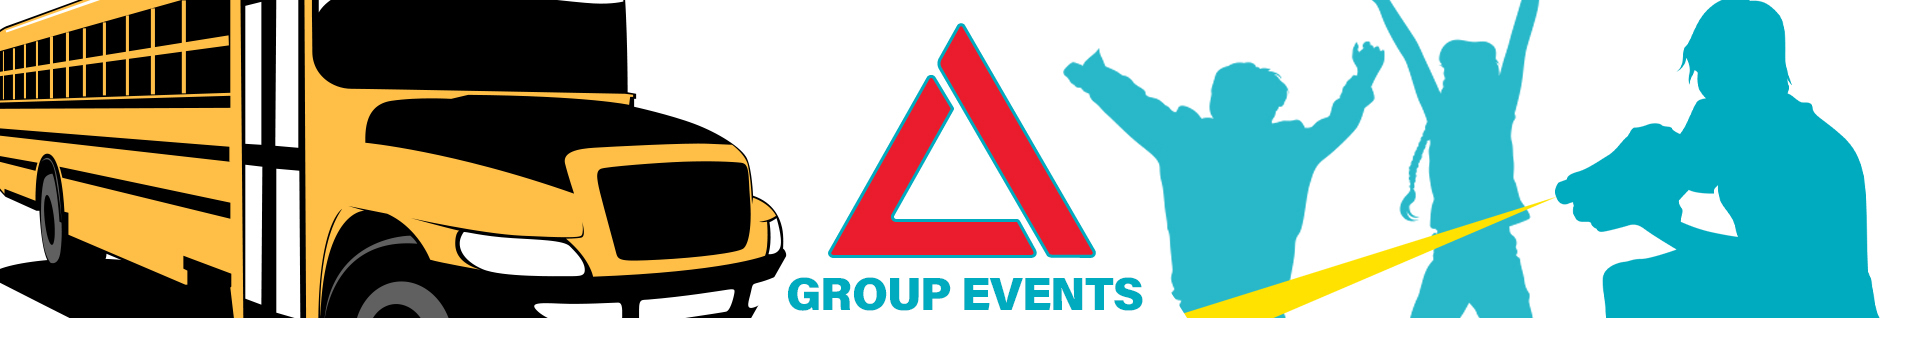 activekidz group events